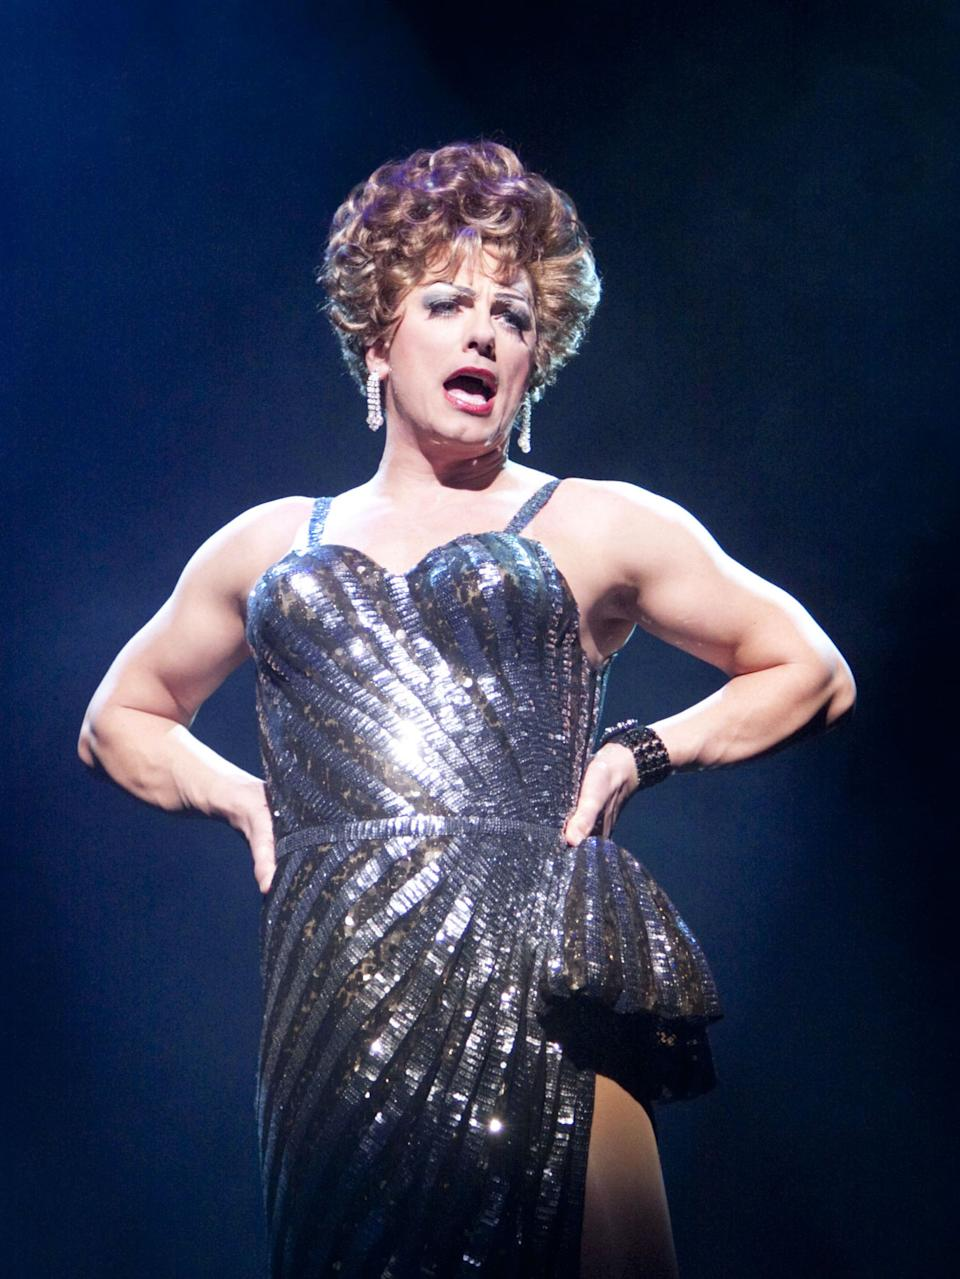 <p>Barrowman as Zaza in the musical La Cage aux Folles at The Playhouse Theatre, London in 2009</p>Rex Features